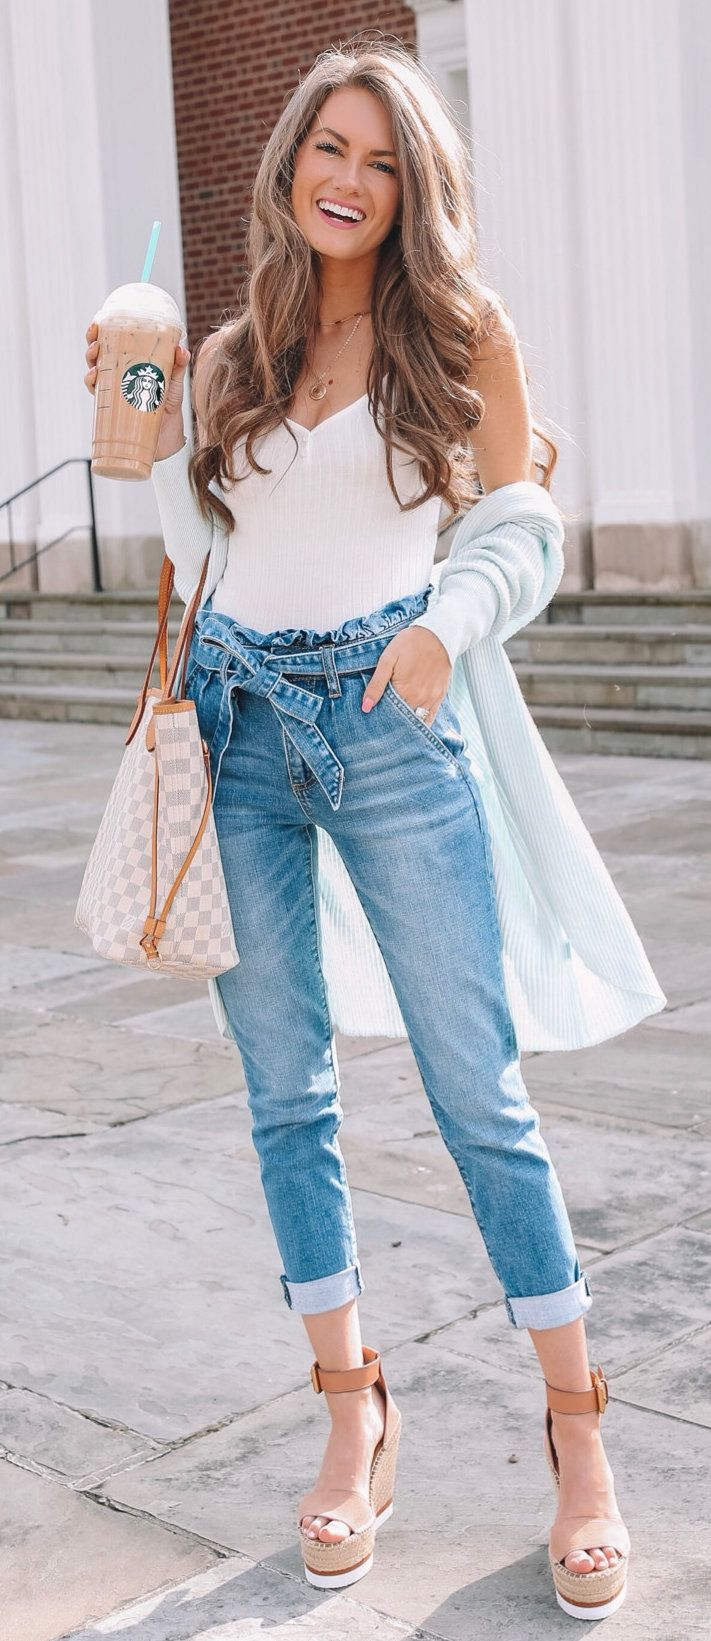 white camisole tops #spring #outfits